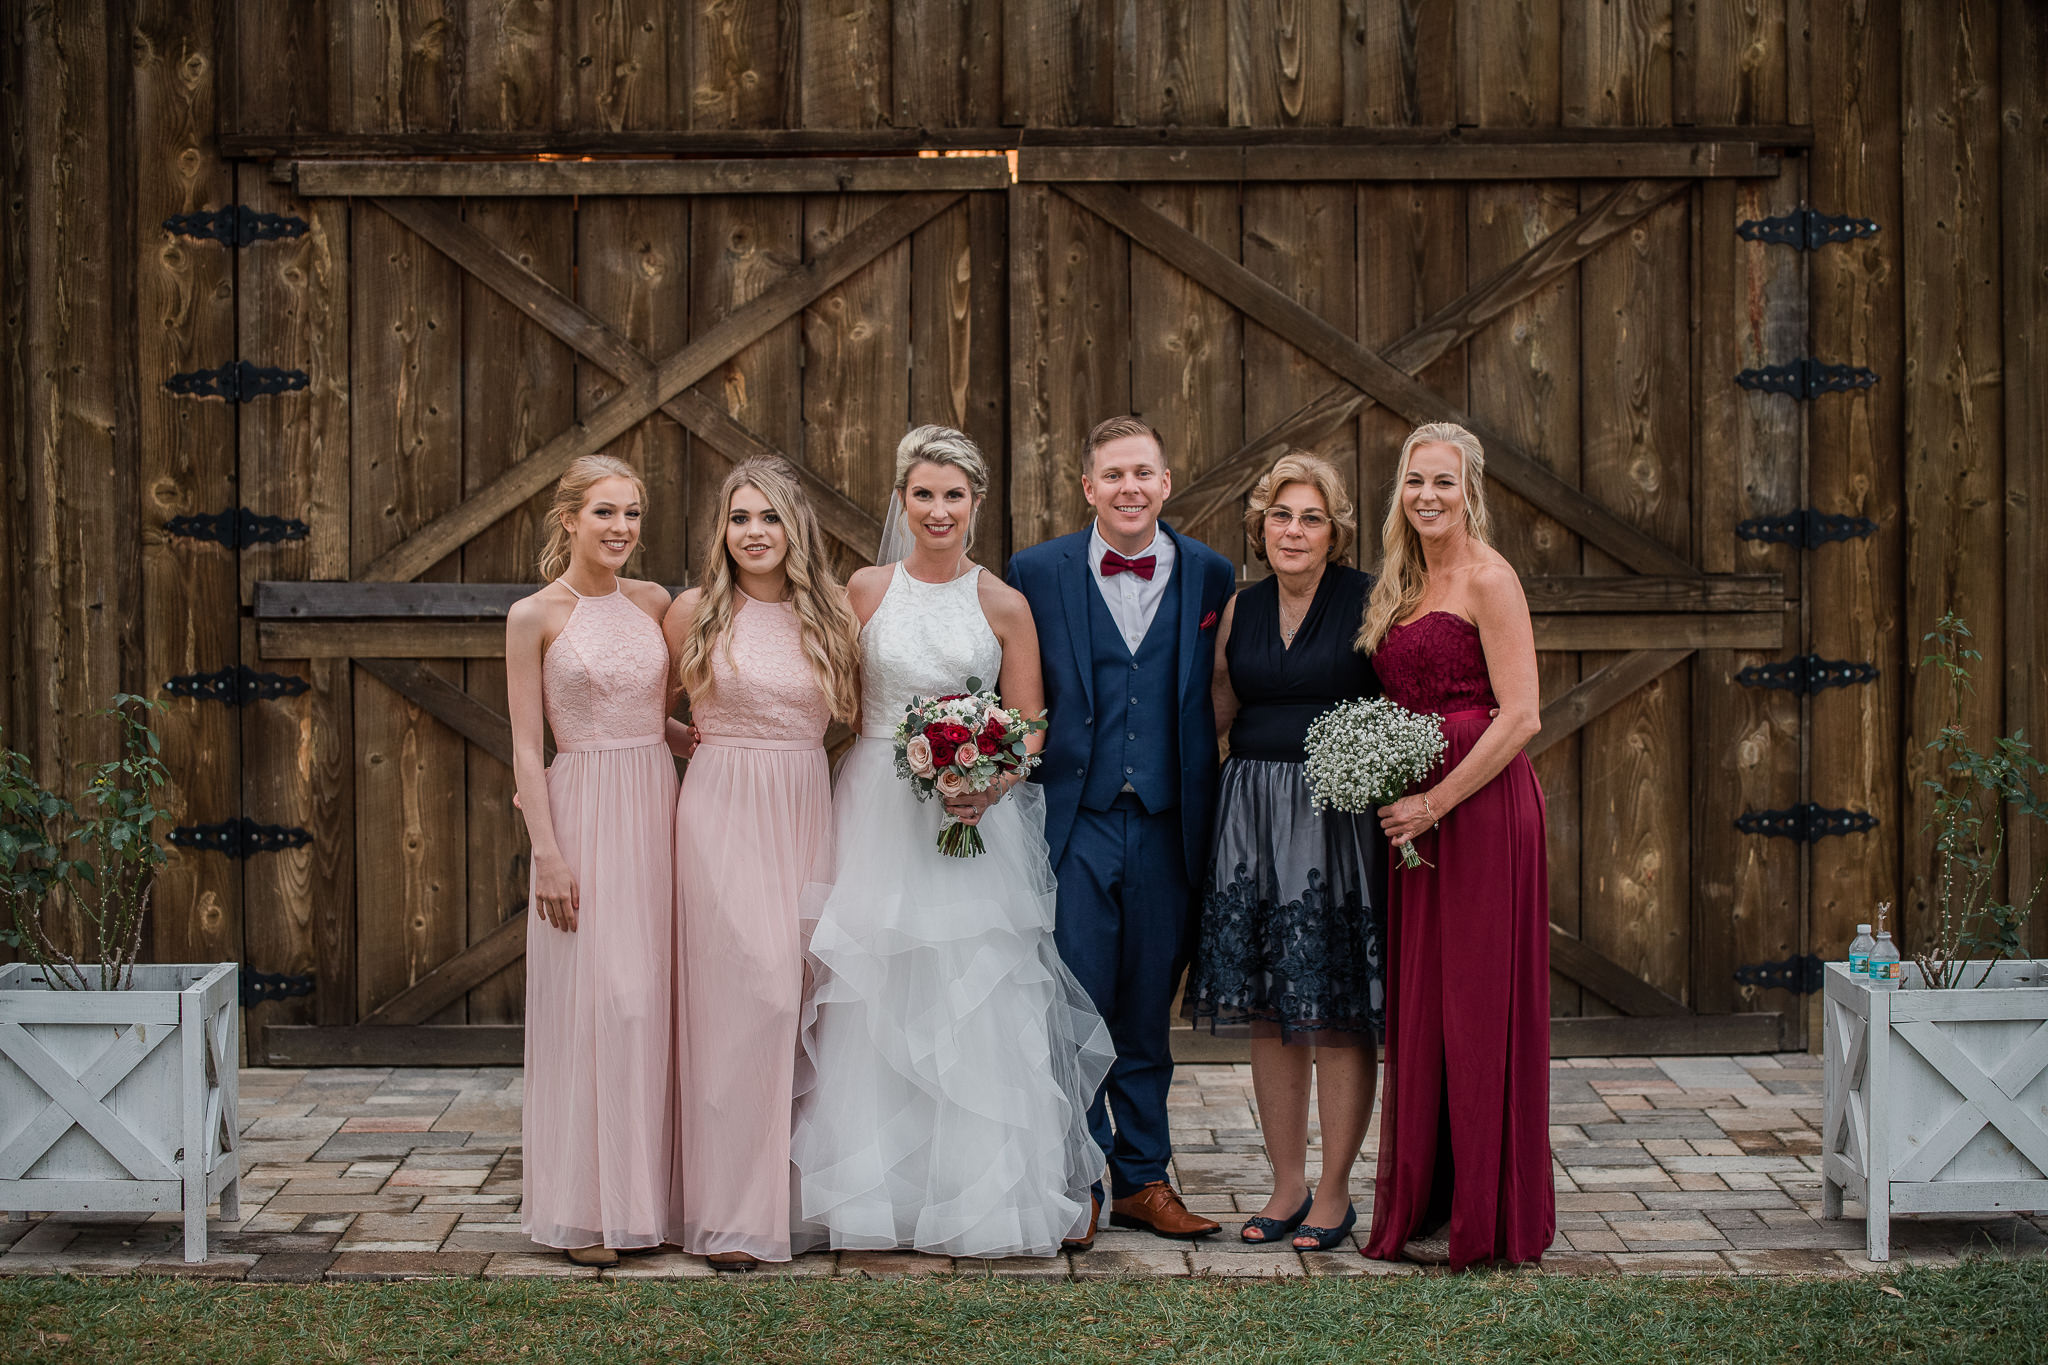 TAMPA_WEDDING_PHOTOGRAPHER_DRMZ_SPARROW_BARN_42.jpg